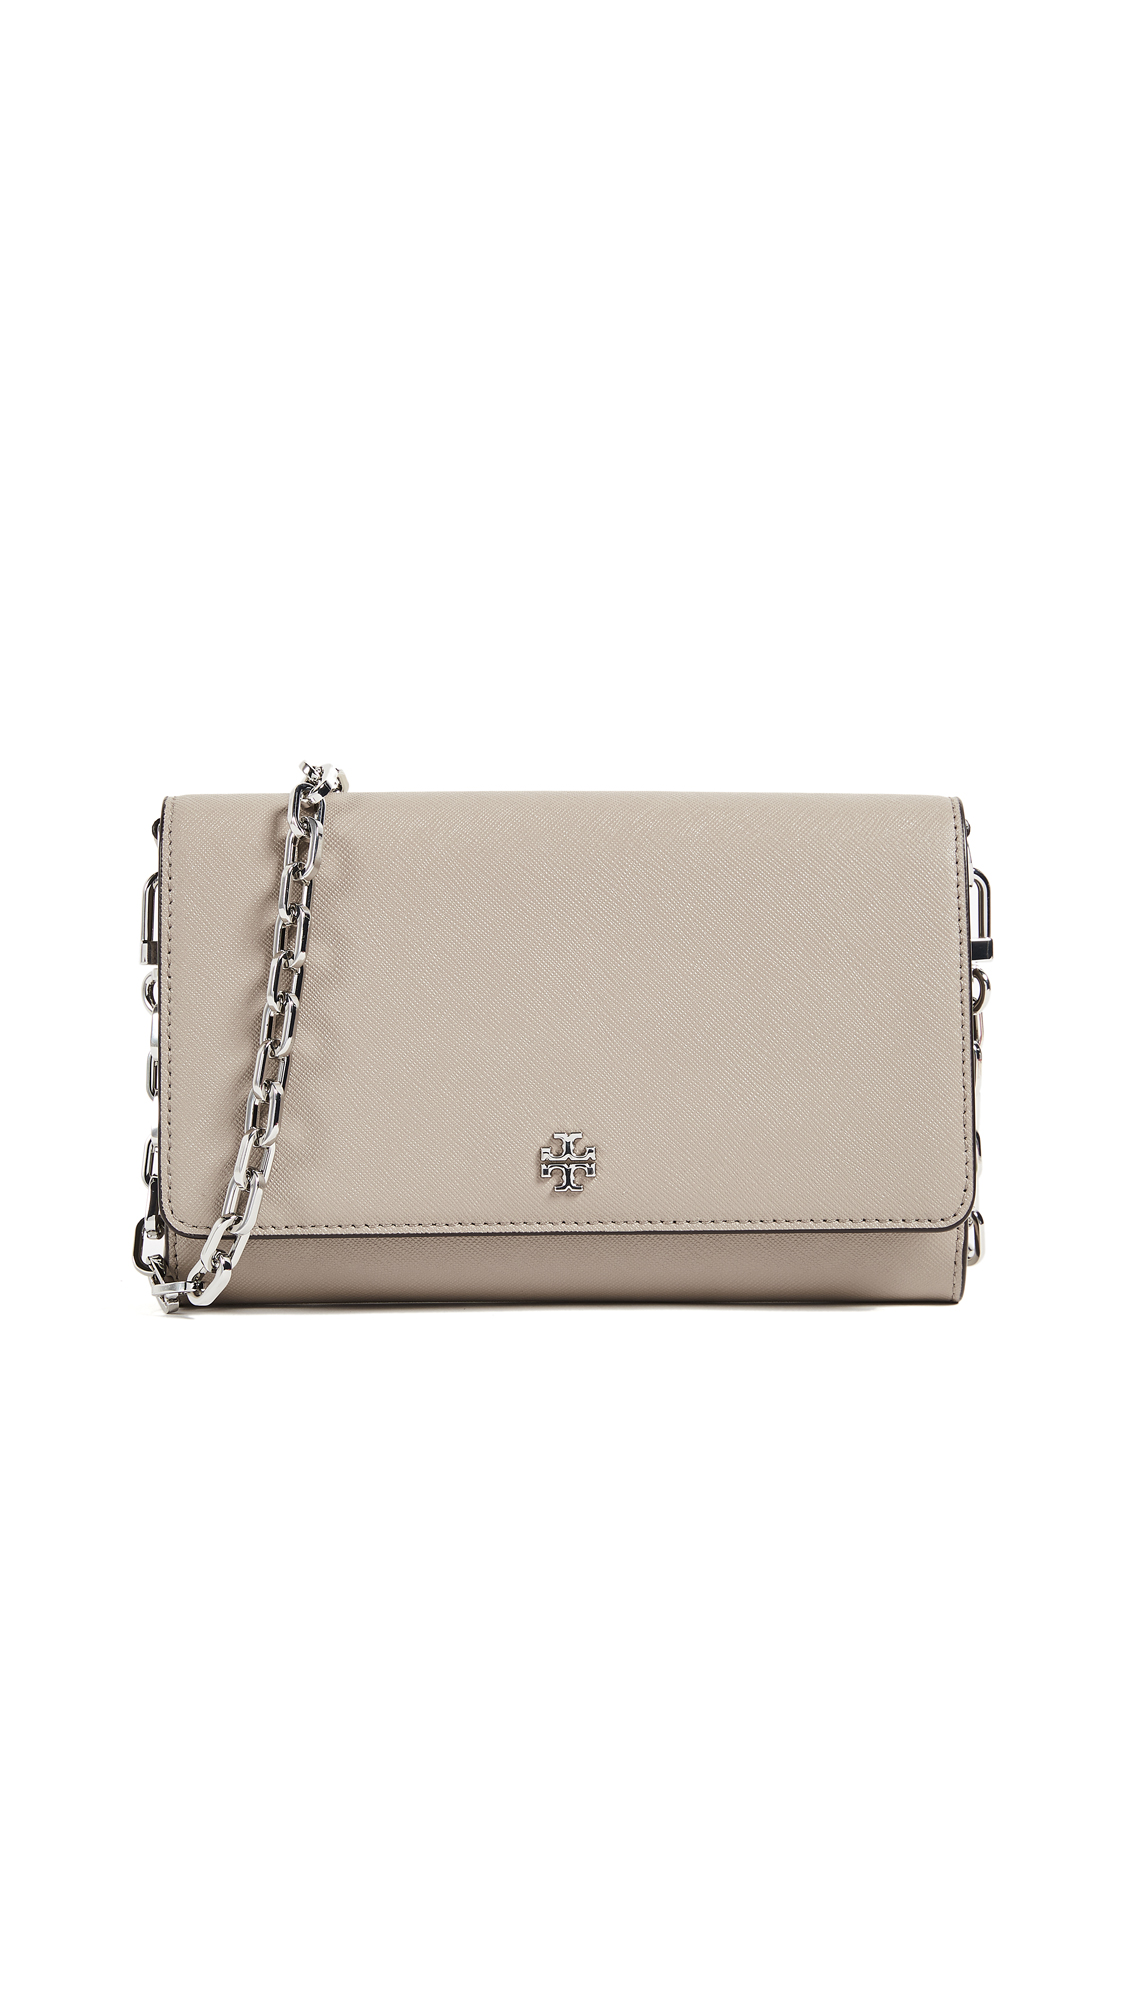 Tory Burch Robinson Chain Wallet - French Gray